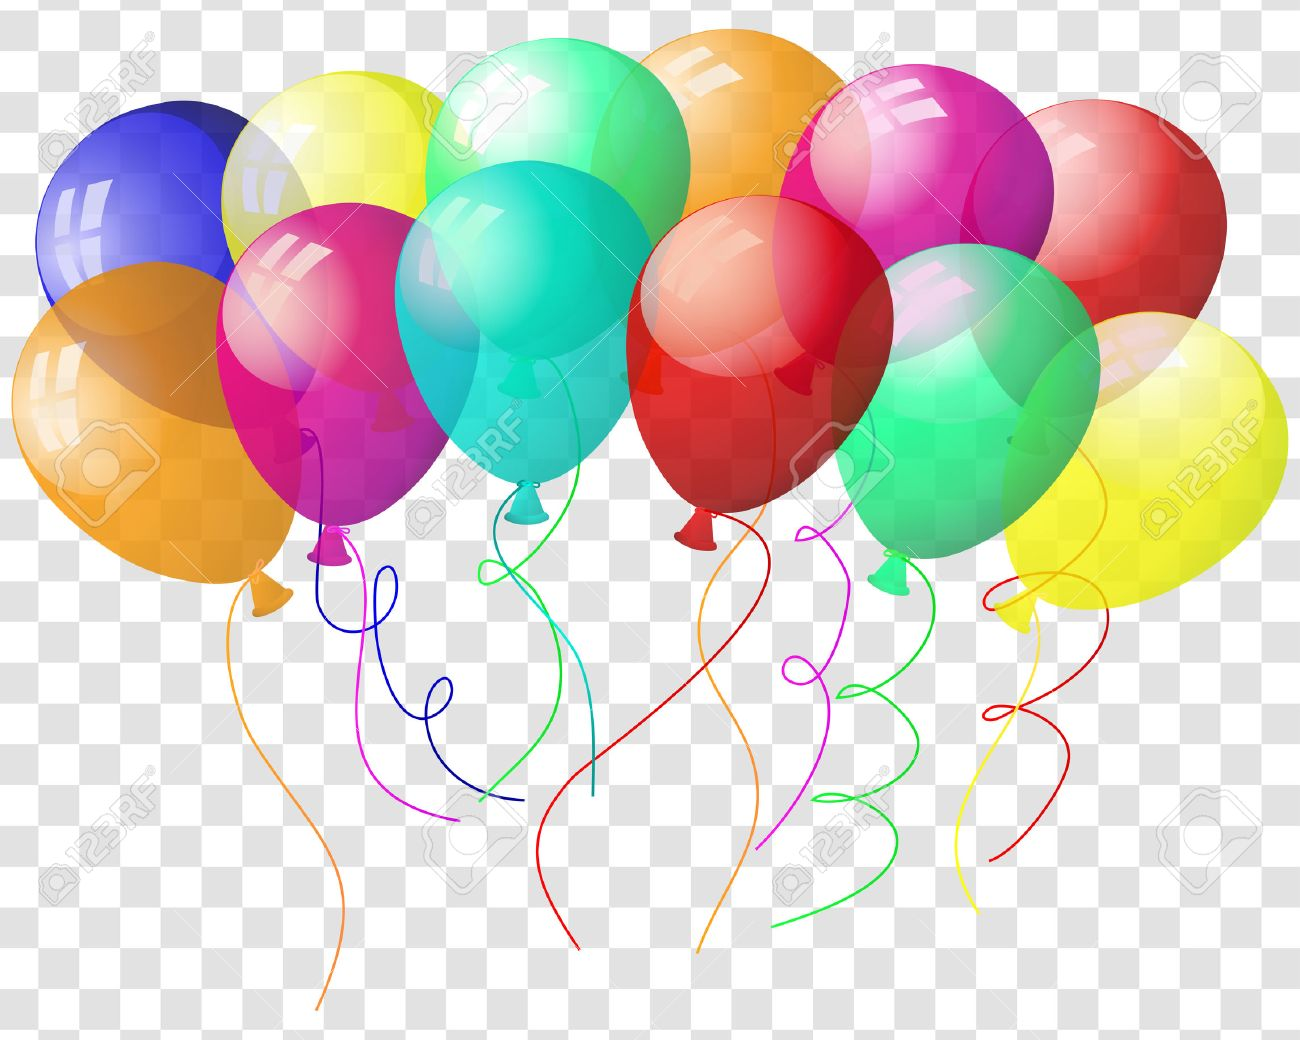 transparent colorful balloons in air on gray grid background